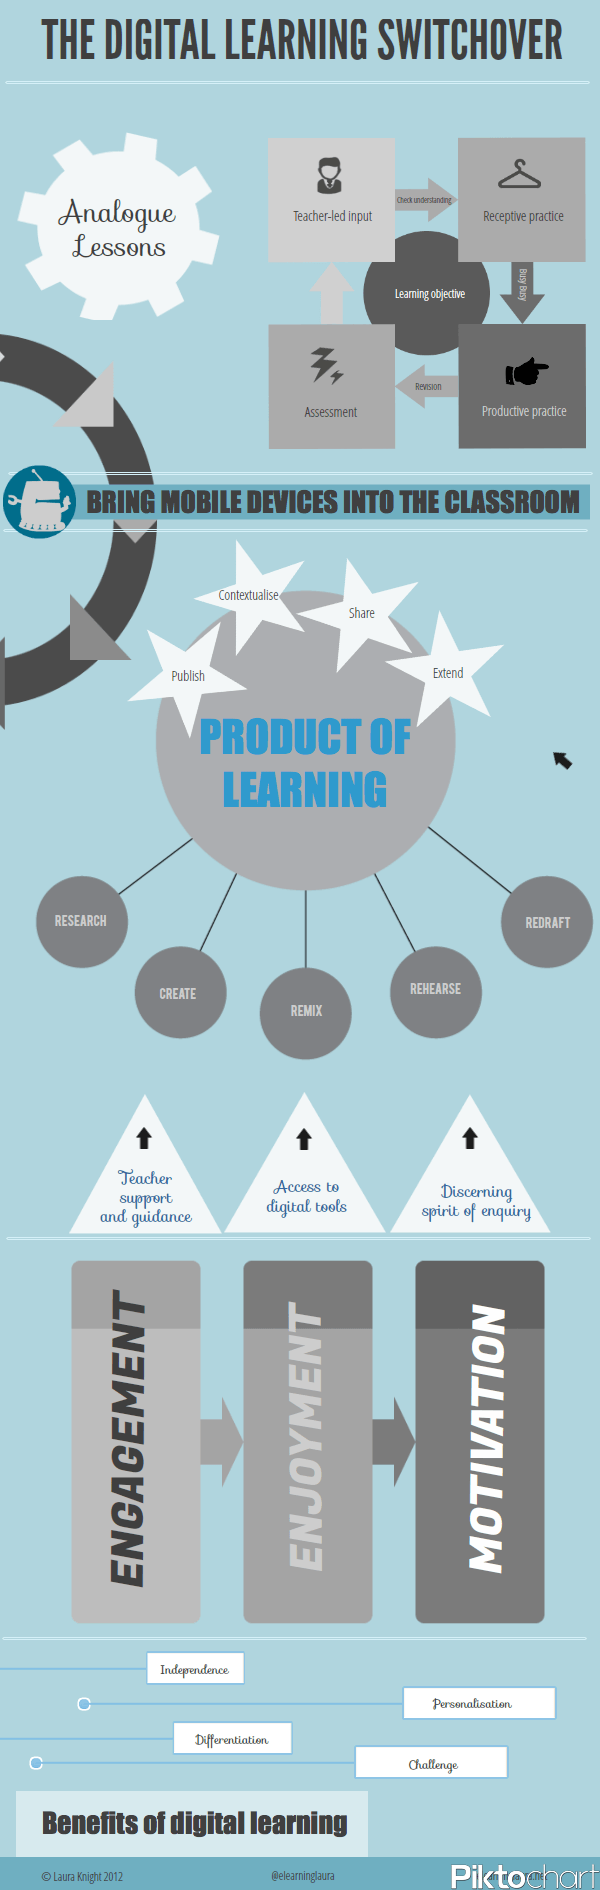 The-Digital-Learning-Switchover-Infographic